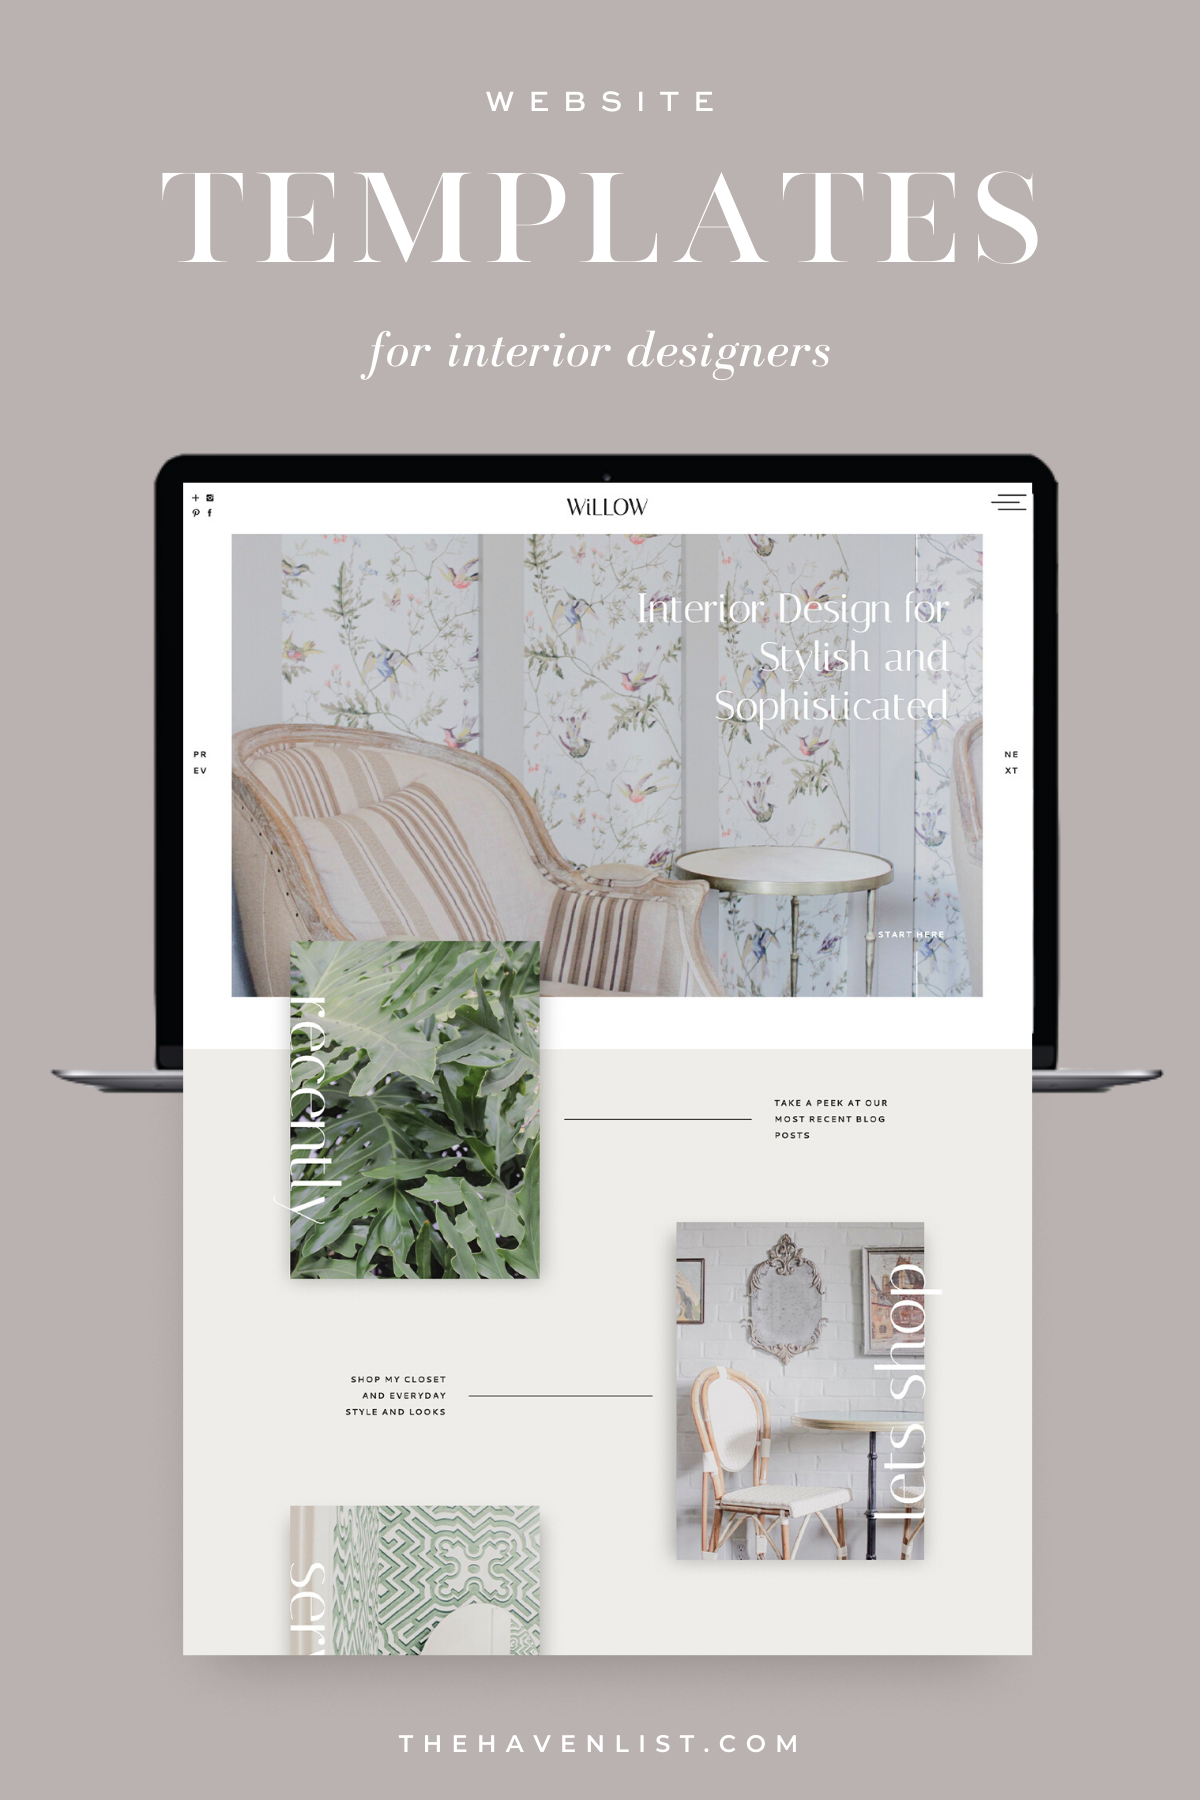 Easy-To-Edit Showit Website Templates and Customizable Website Templates for Interior Designers and Creatives - Stylish Social Media Templates, Website Content Planner & Guide, Showit Website Template, Saffron Avenue, The Haven List, Willow